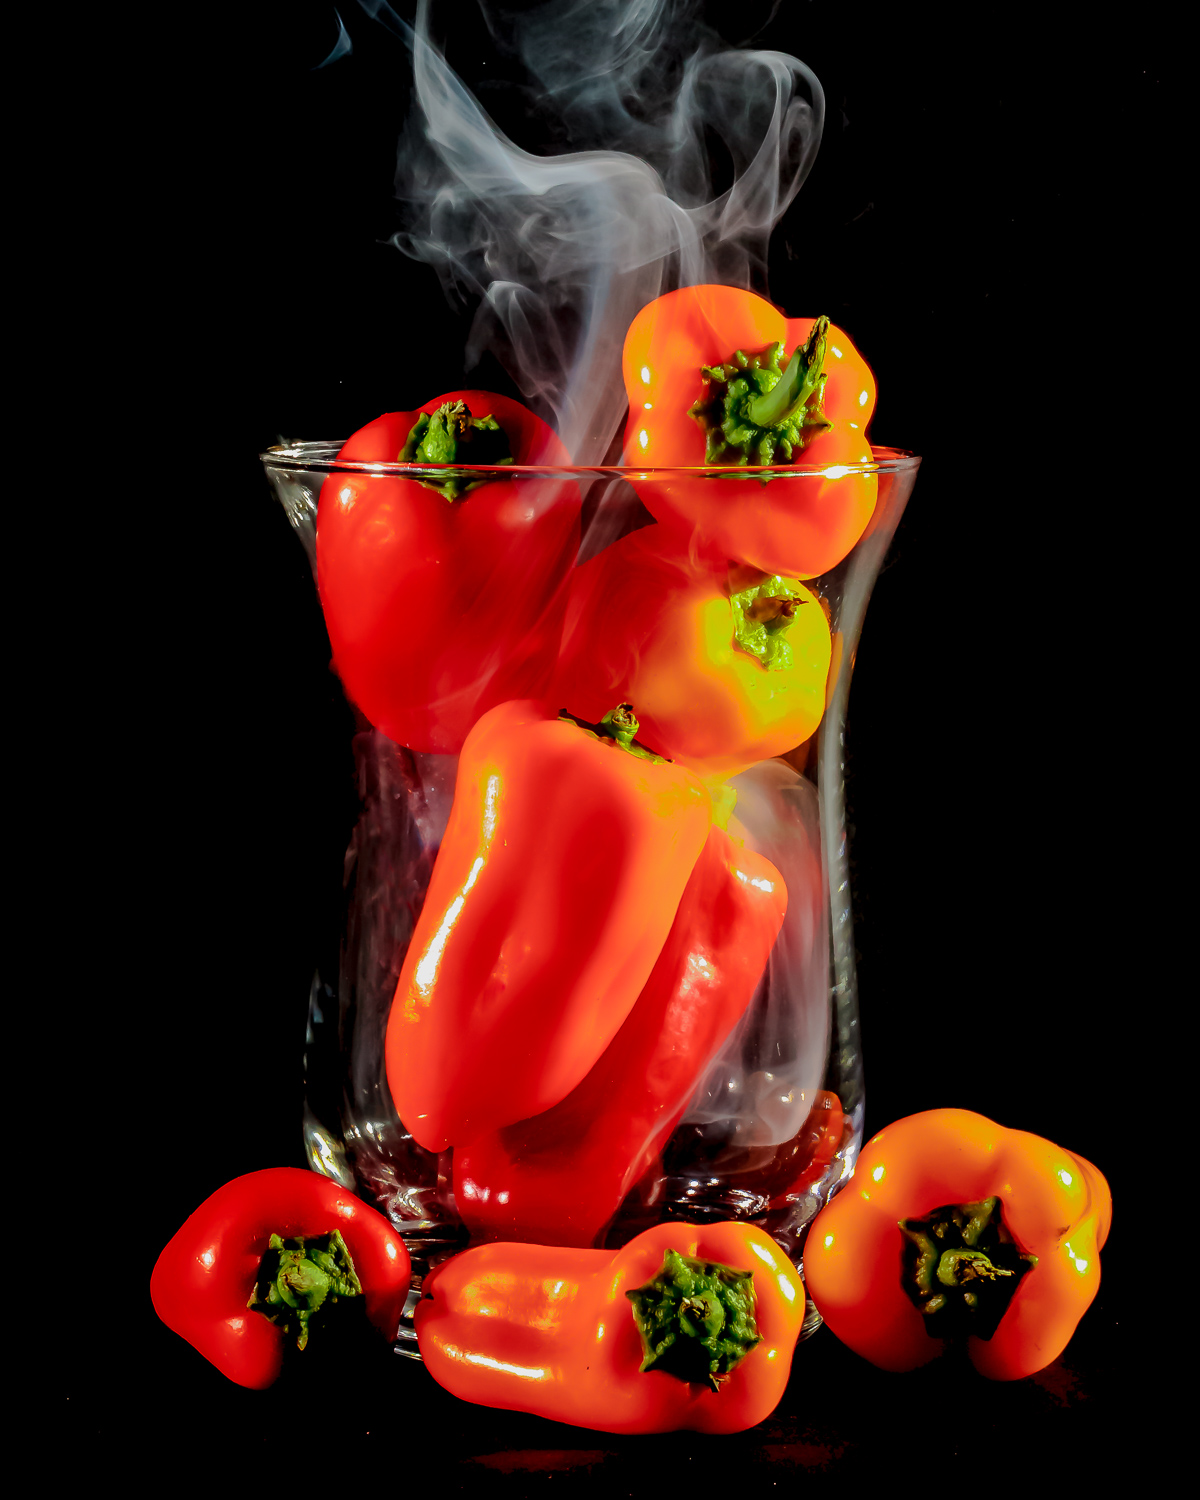 Abstract Smoke Photography - Smokin Hot Peppers